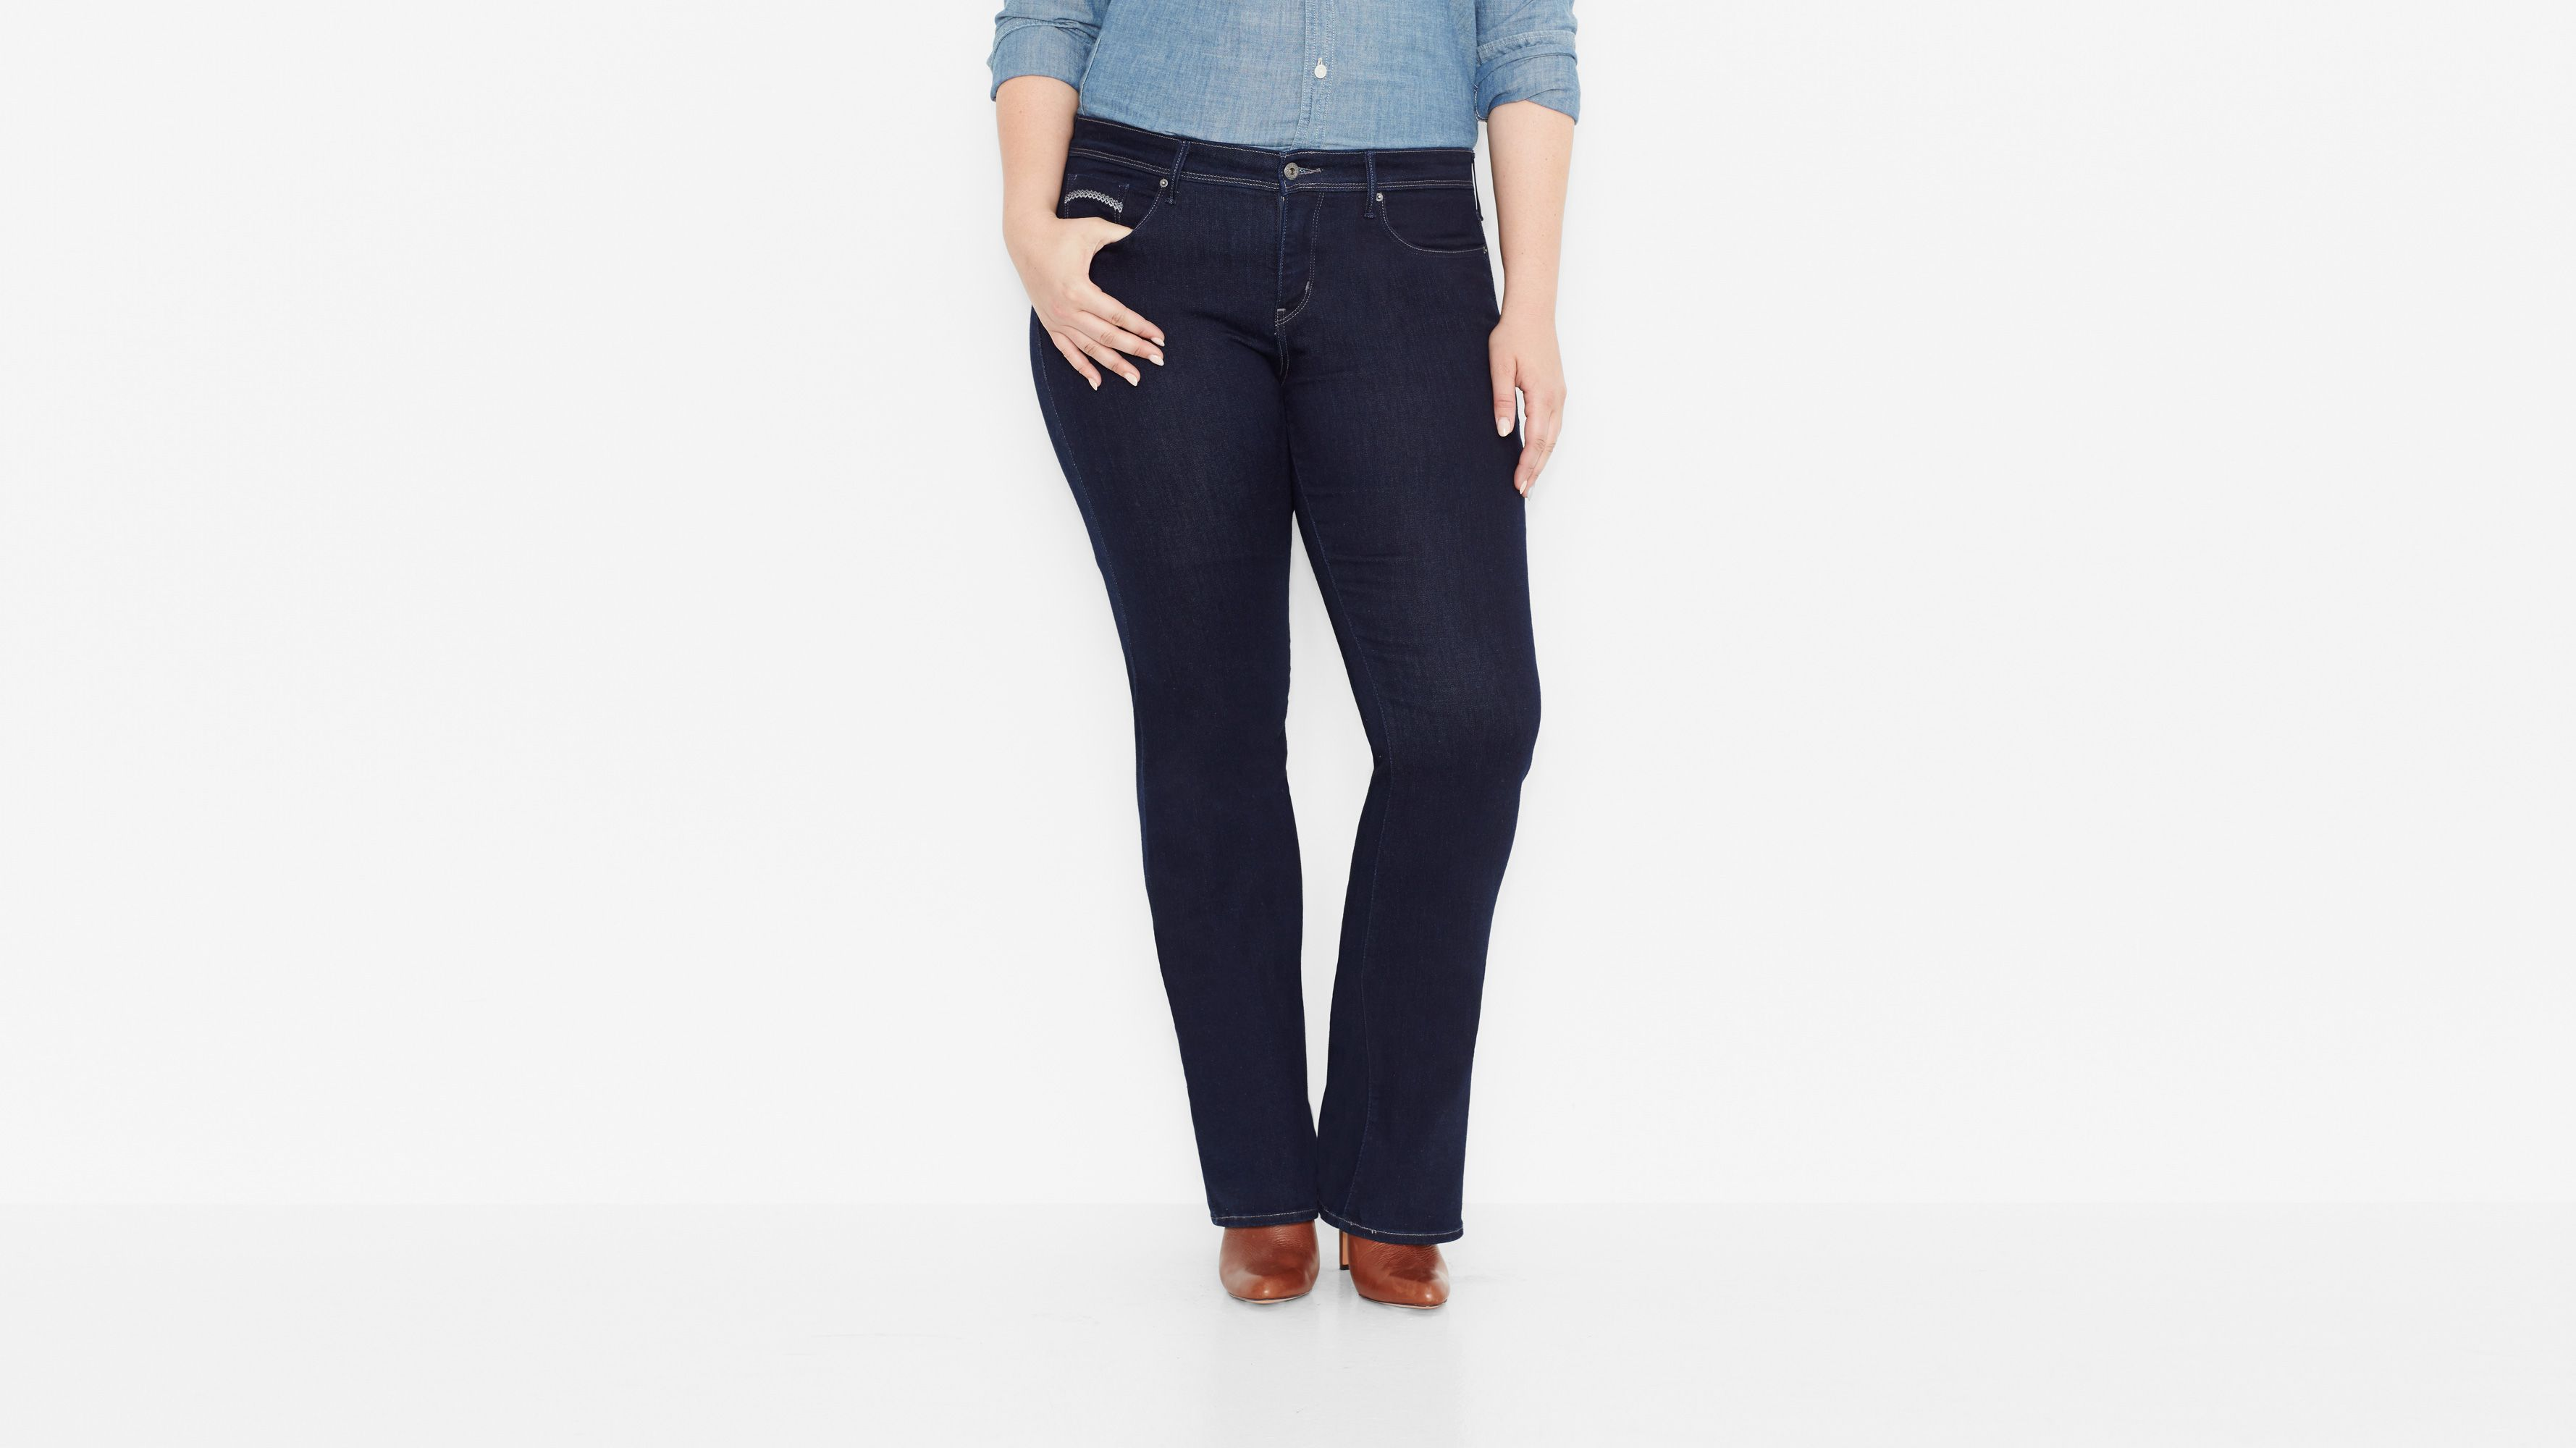 512™ Perfectly Shaping Boot Cut Jeans (Plus) - Stone Blue